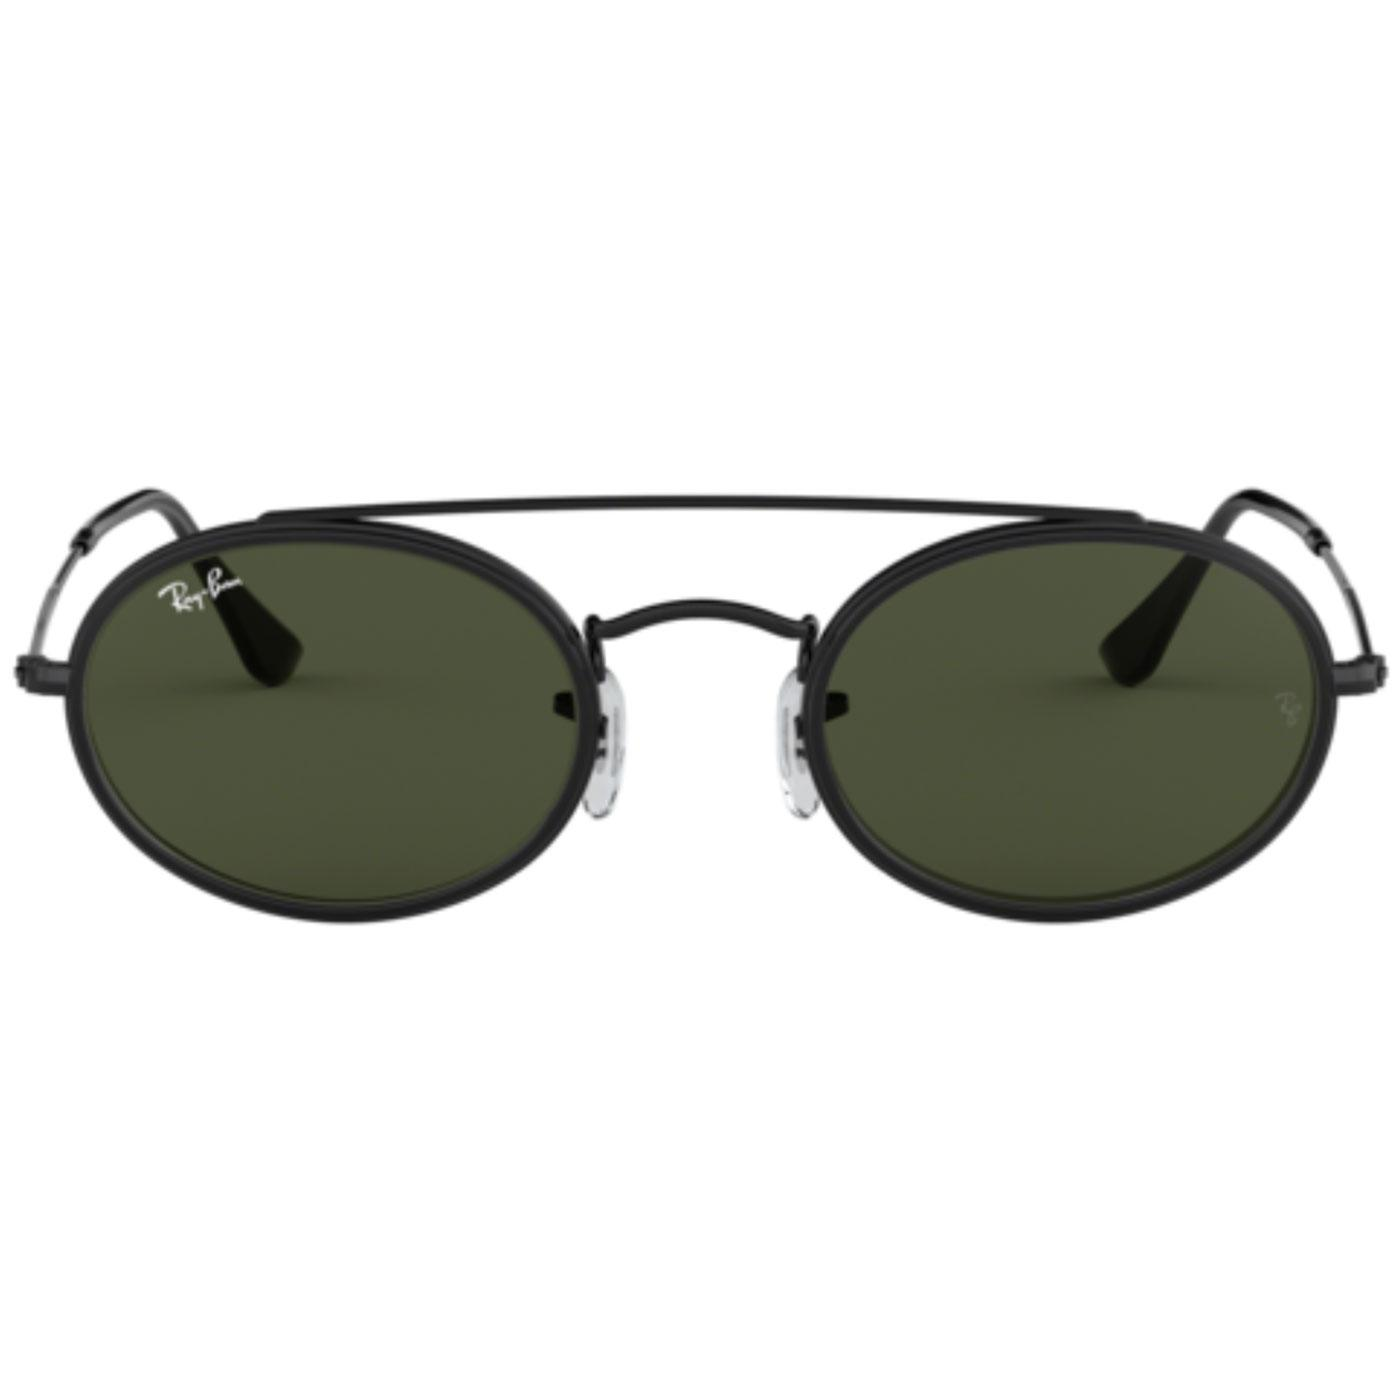 RAY-BAN Retro Double Bridge Round Sunglasses (B)